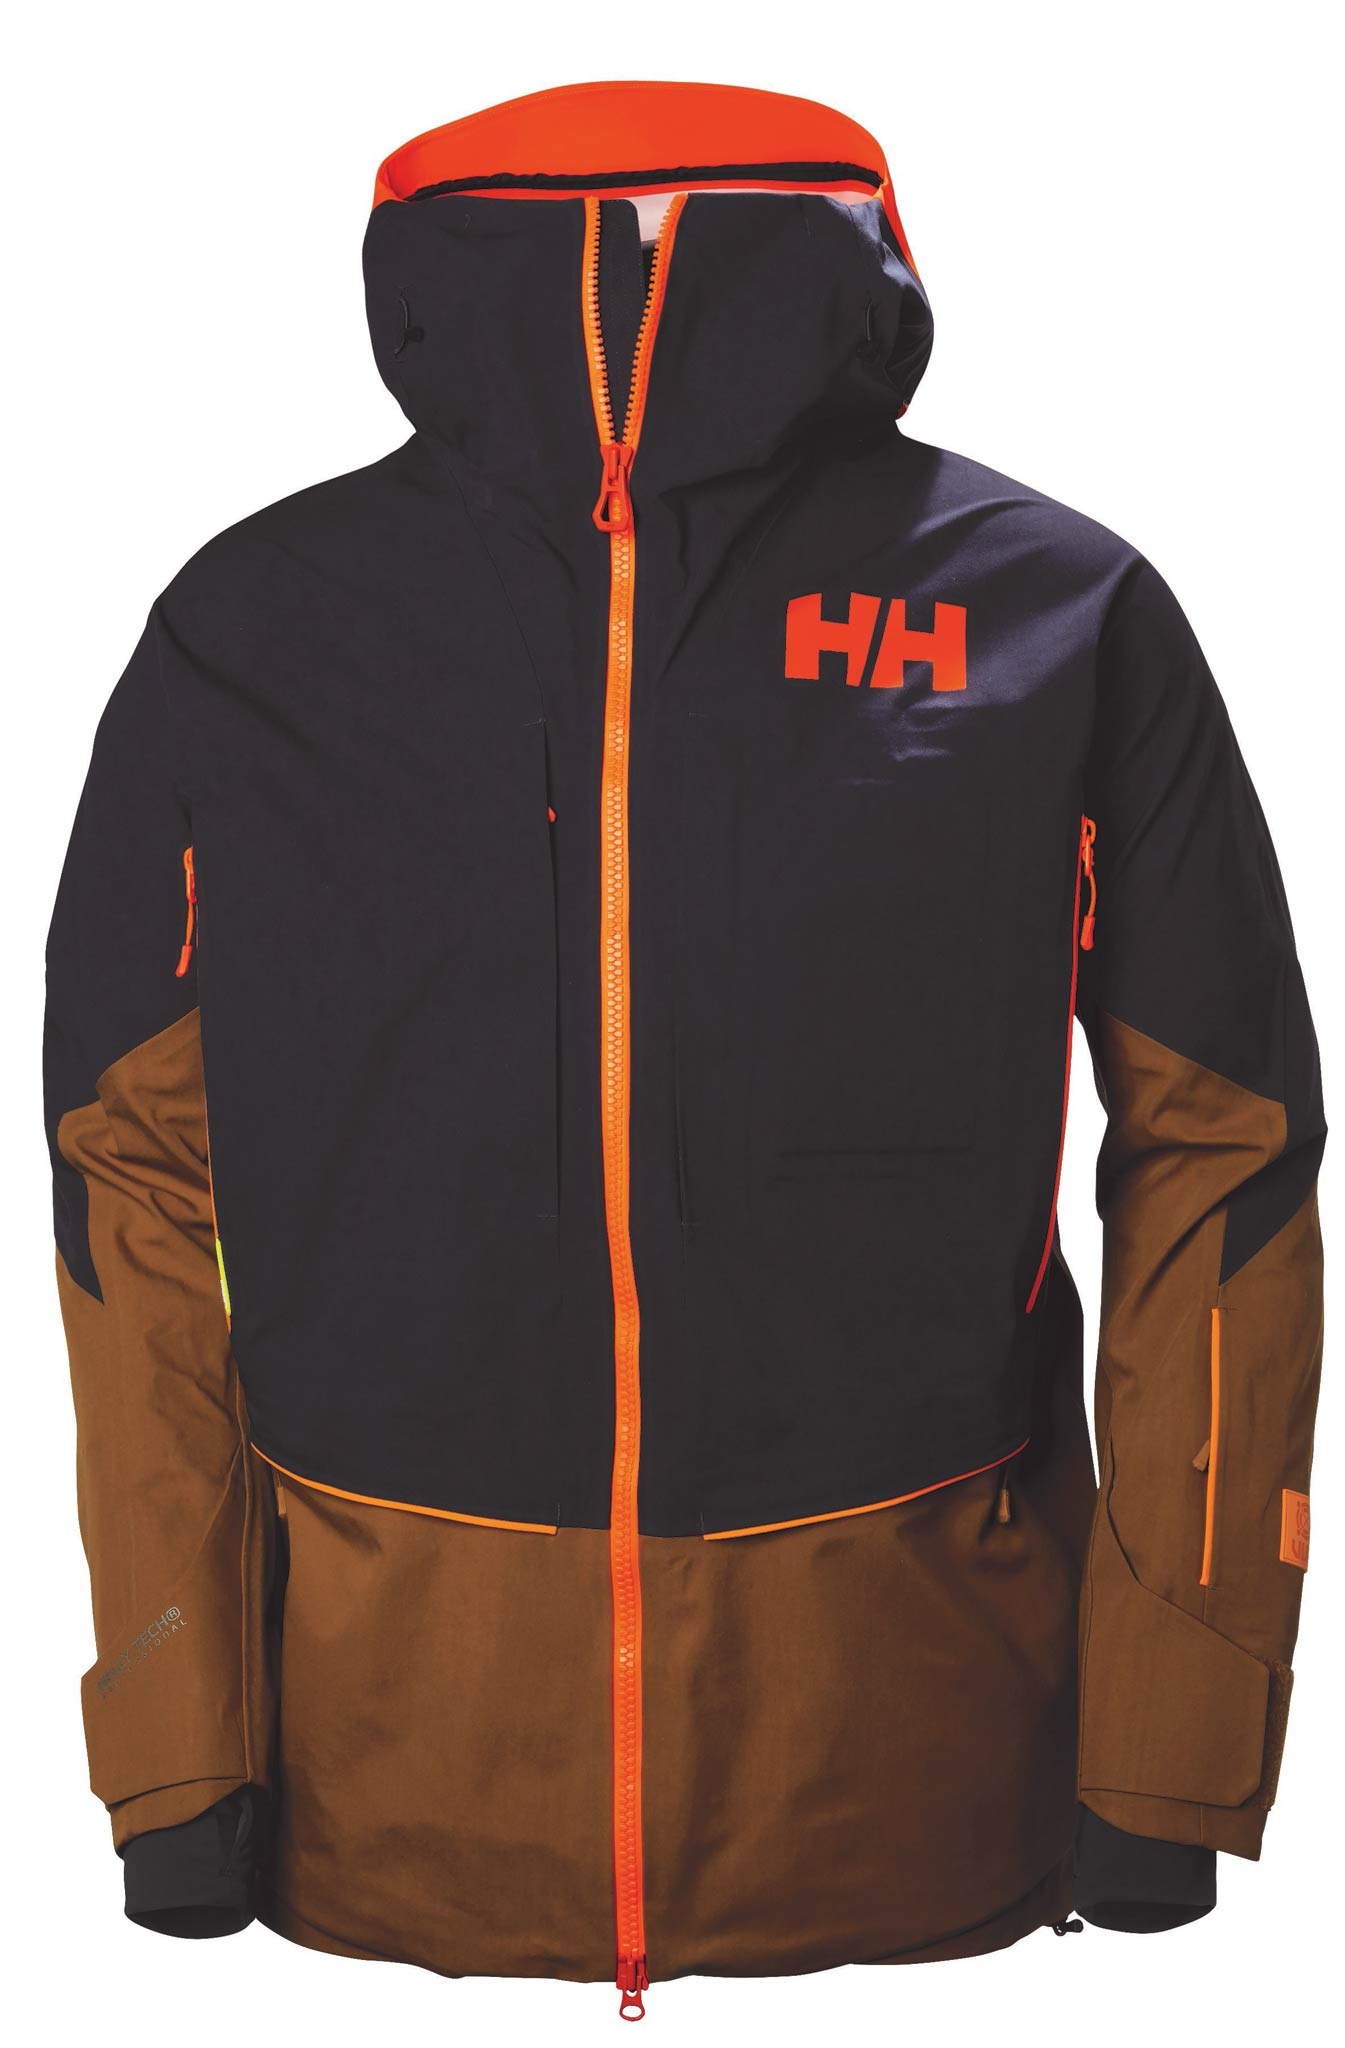 Helly Hansen: Elevation Shell 17/18